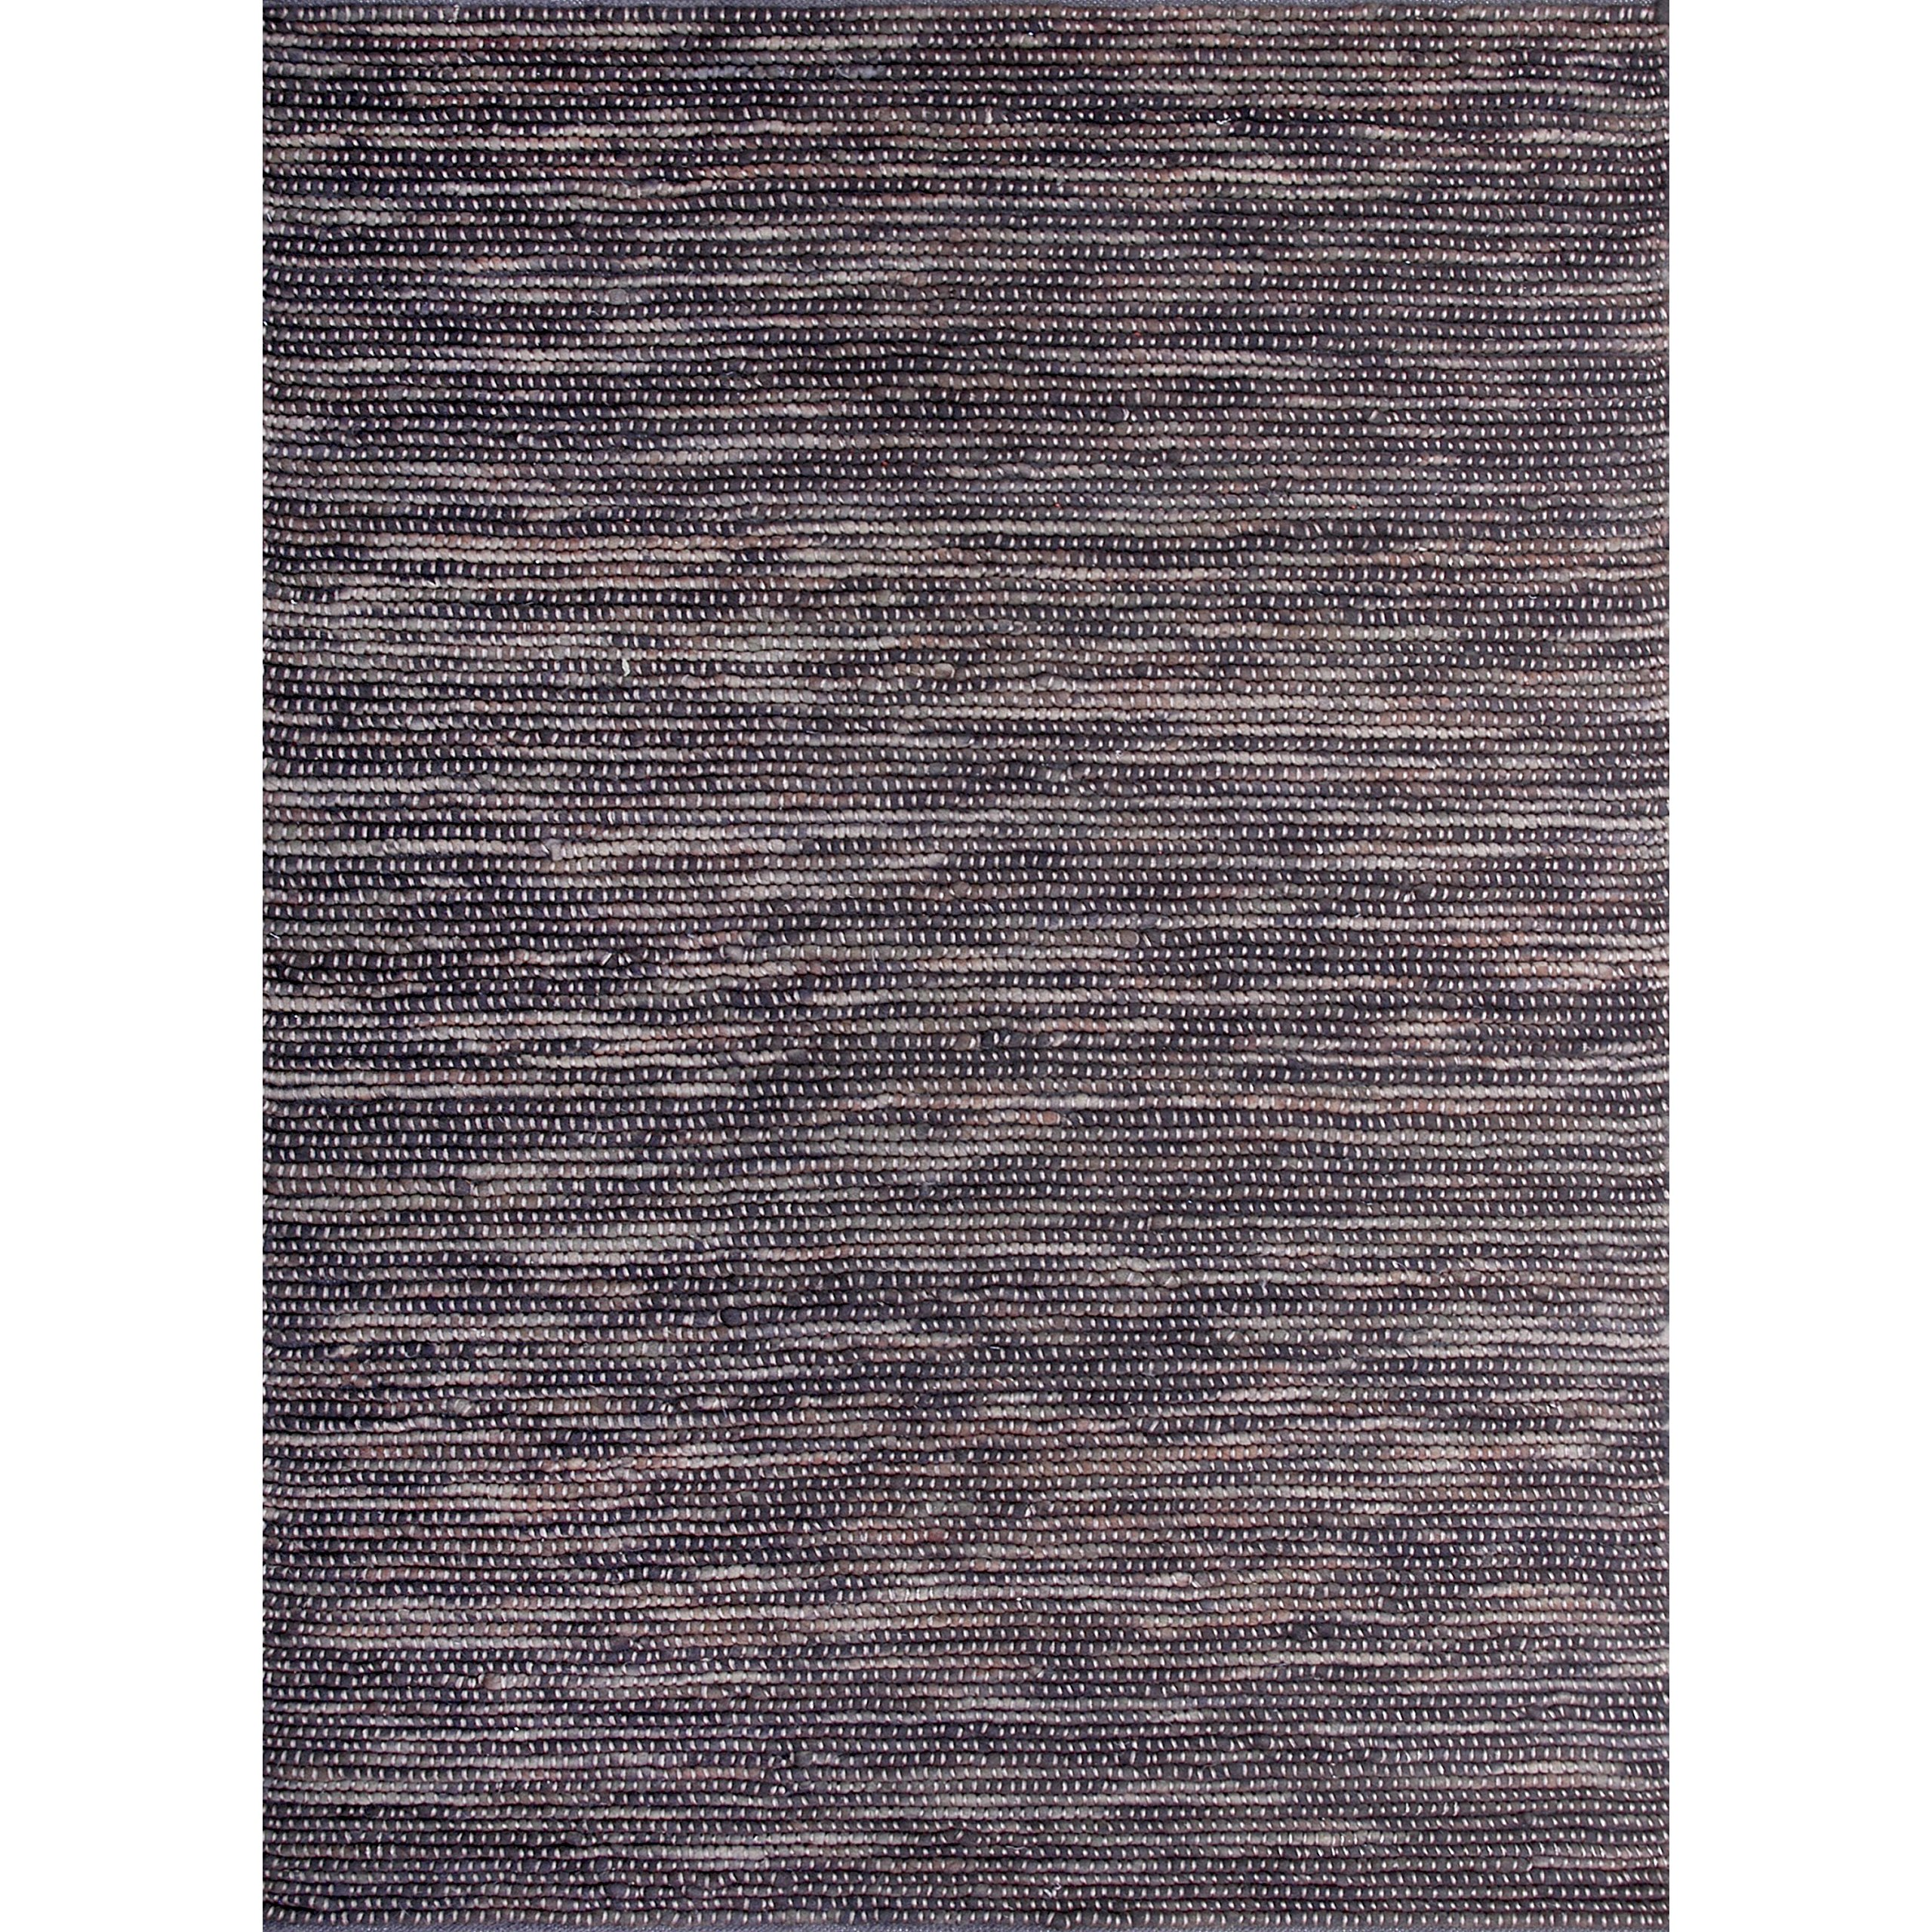 Alexander Home Hand-woven Thais Coconut Felted Wool Rug (3'6 x 5'6) by Alexander Home